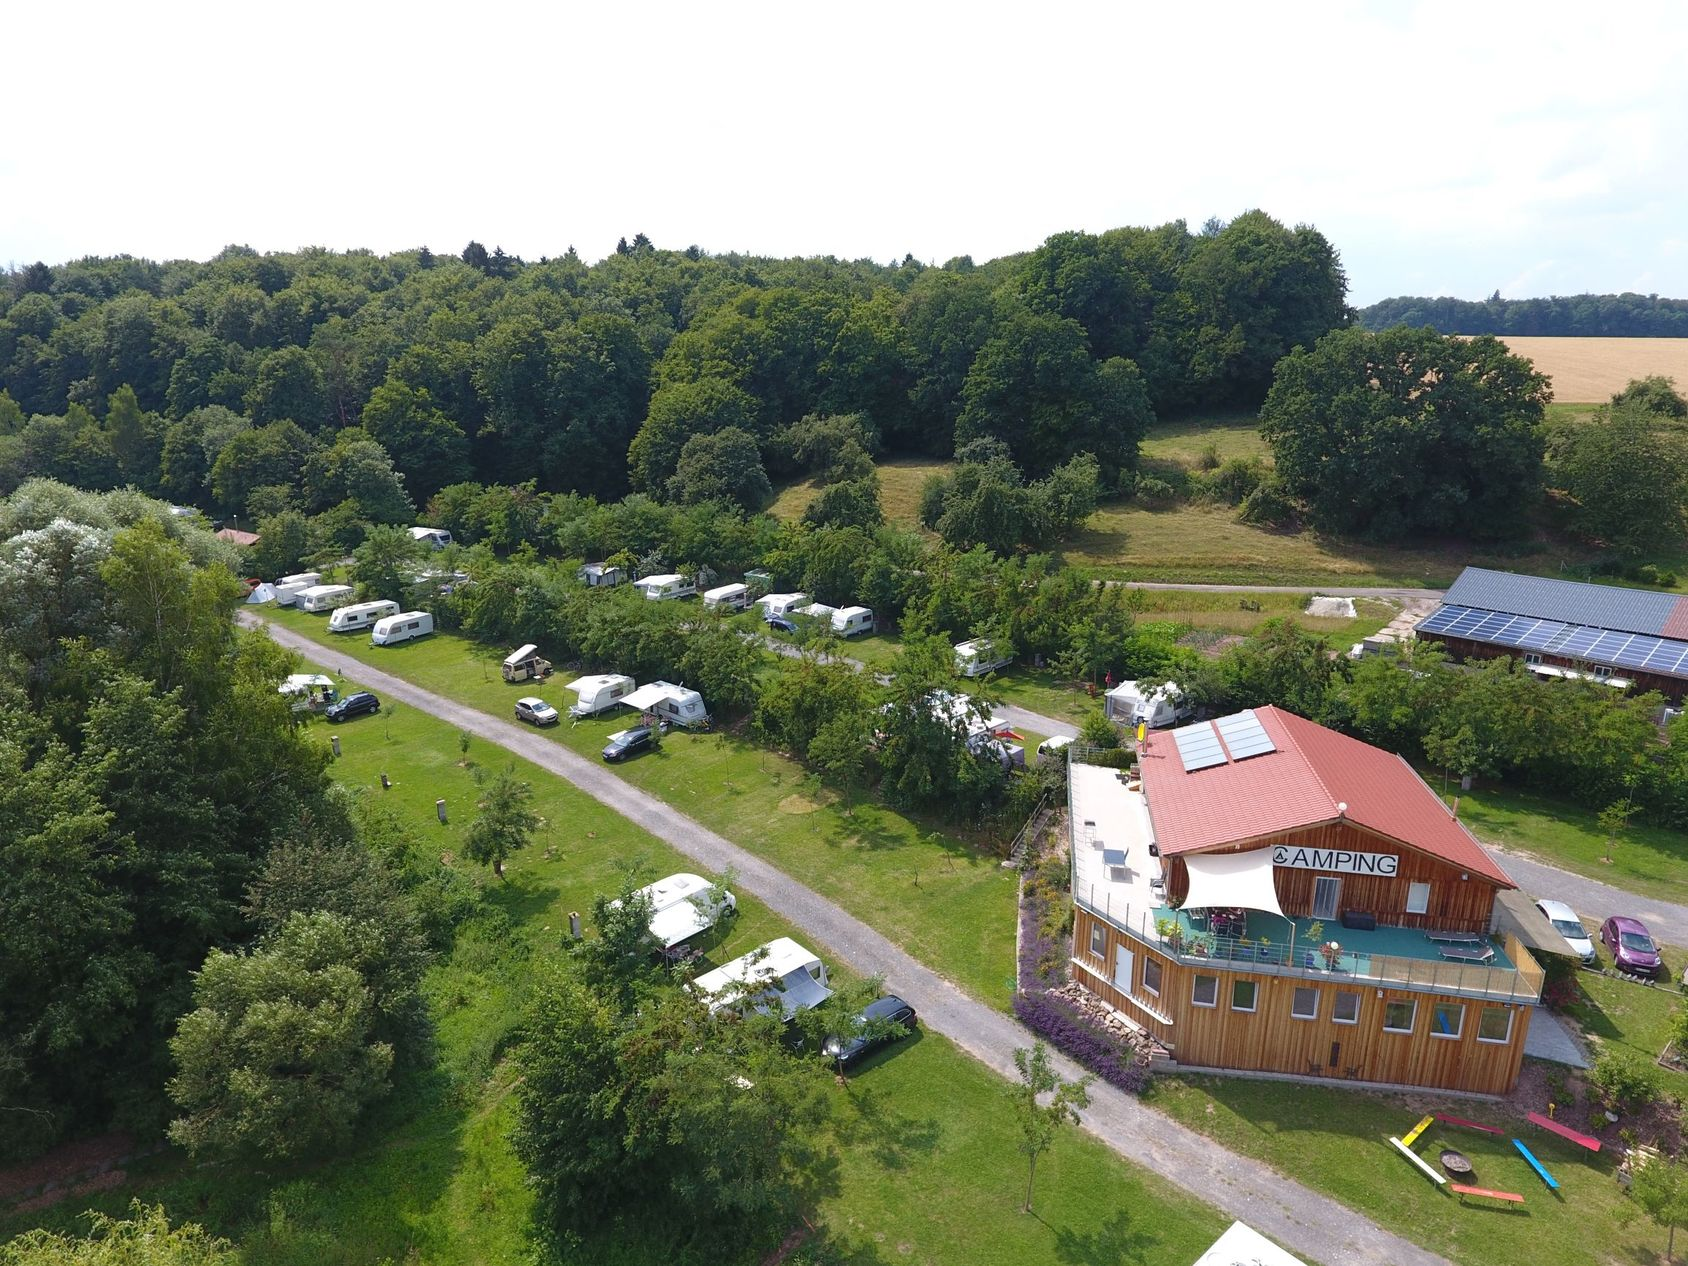 Duitsland-Ebrach-Camping%20Weihersee-ExtraLarge Campings Duitsland